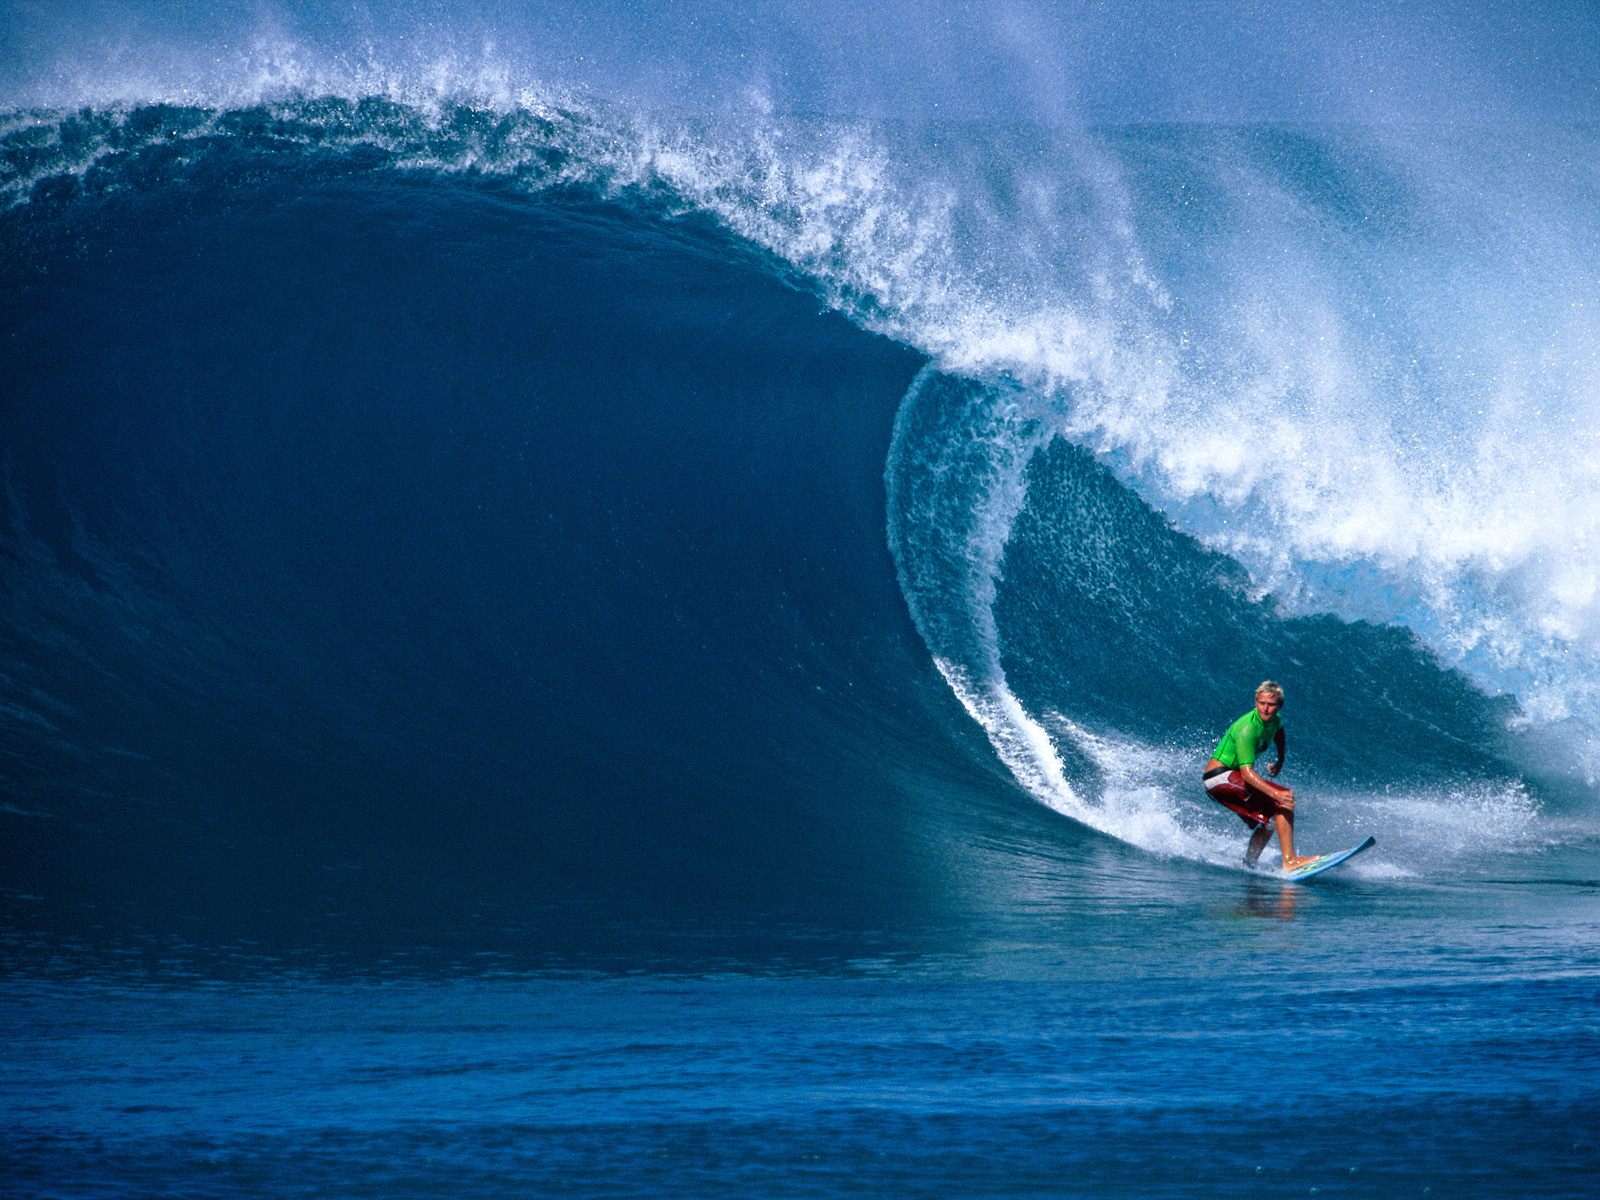 Hawaii Surfing Dangerous Waves New Stylish Wallpaper 1600x1200